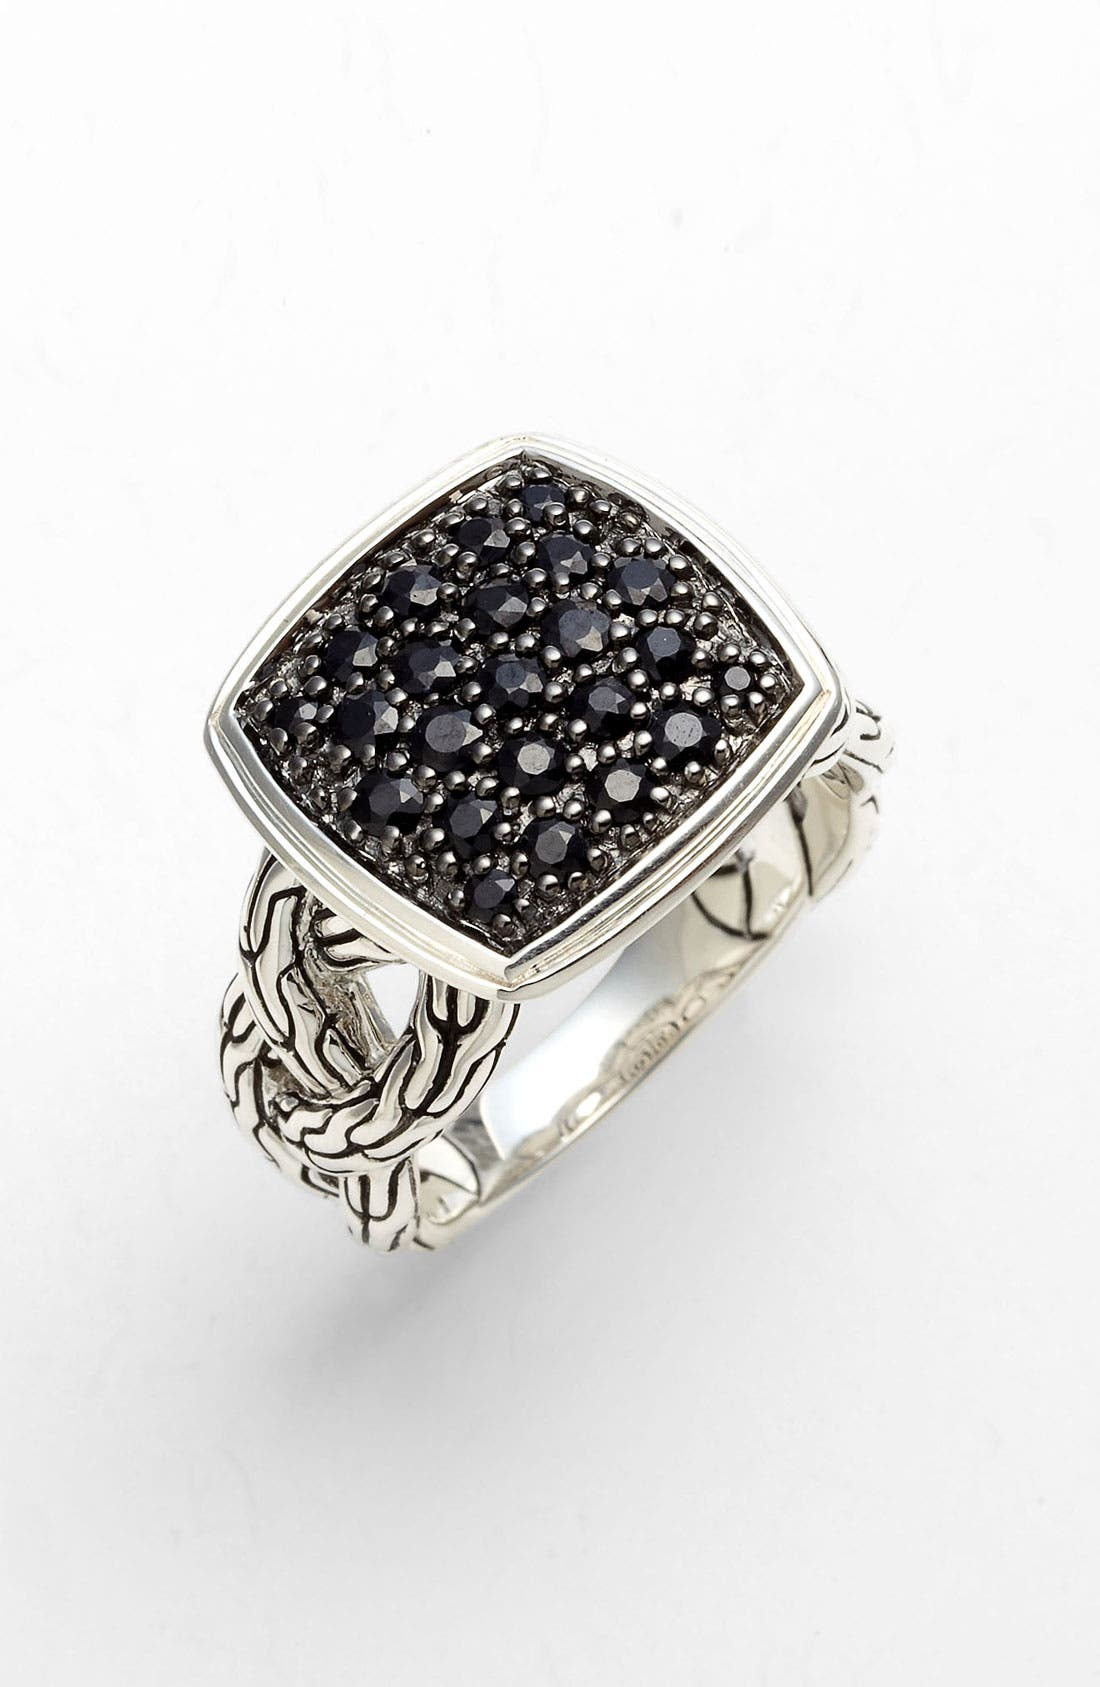 Main Image - John Hardy 'Classic Chain - Lava' Small Cocktail Ring